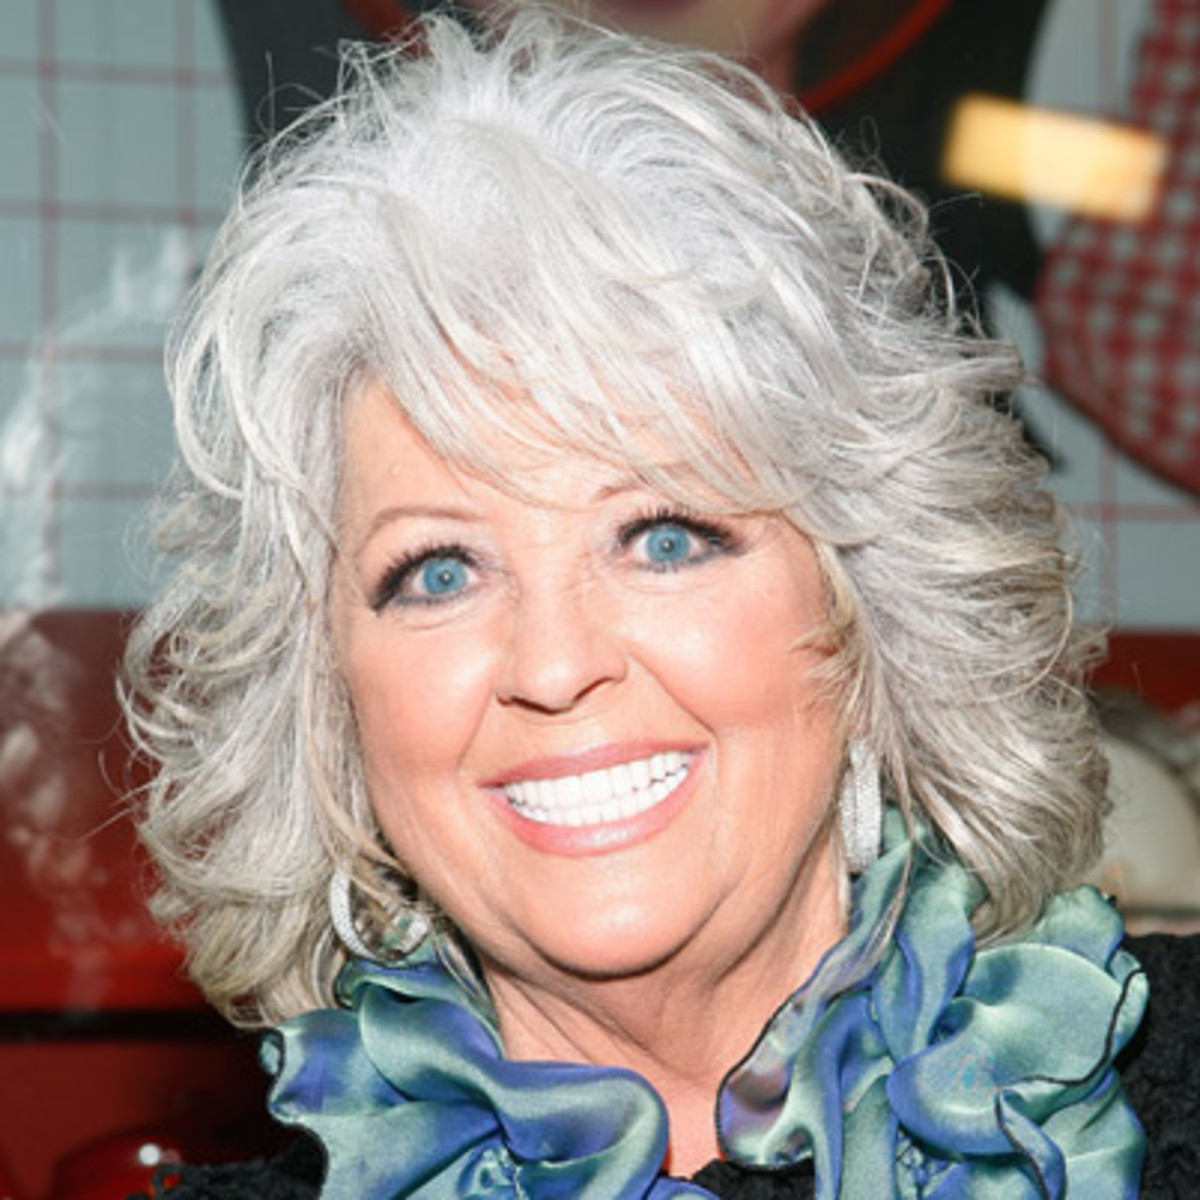 paula deen Browse paula deen's recipes from classic meals to southern favorites you'll find desserts, drinks, snacks and brunch recipes for the novice cook or expert chef.